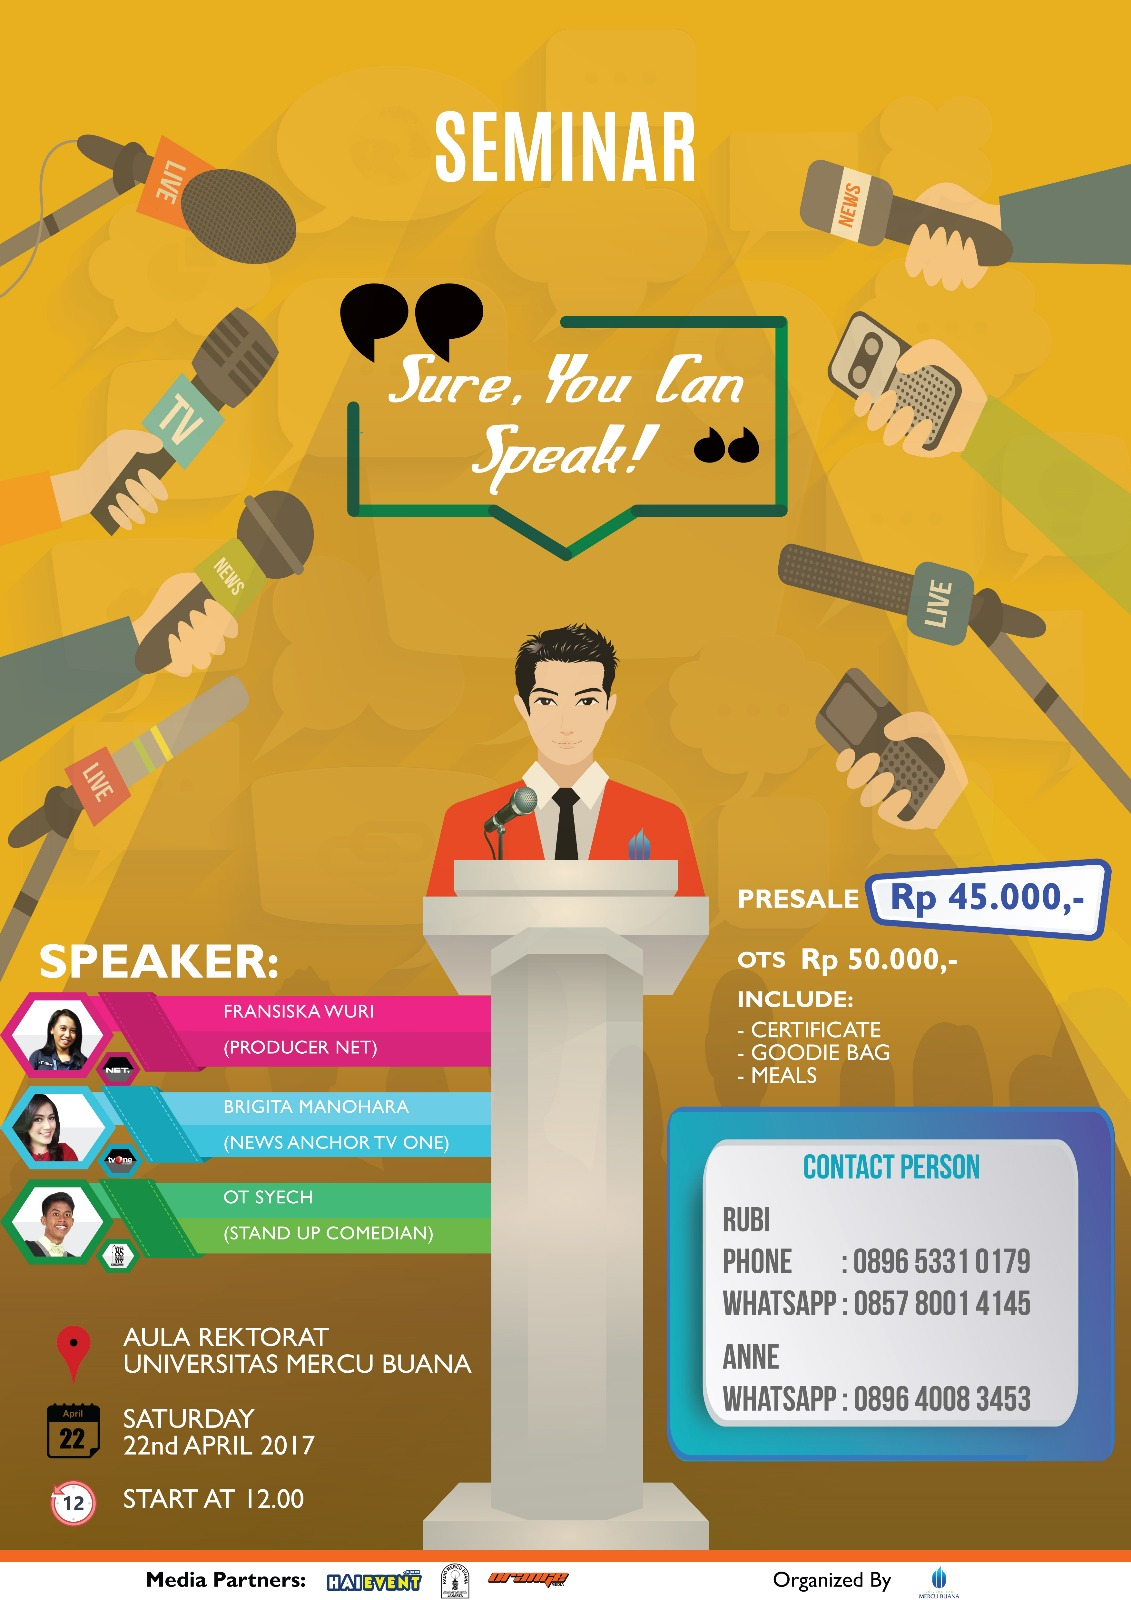 Sure, You Can Speak! - Aula Rektorat Mercu Buana Jakarta, 22 April 2017